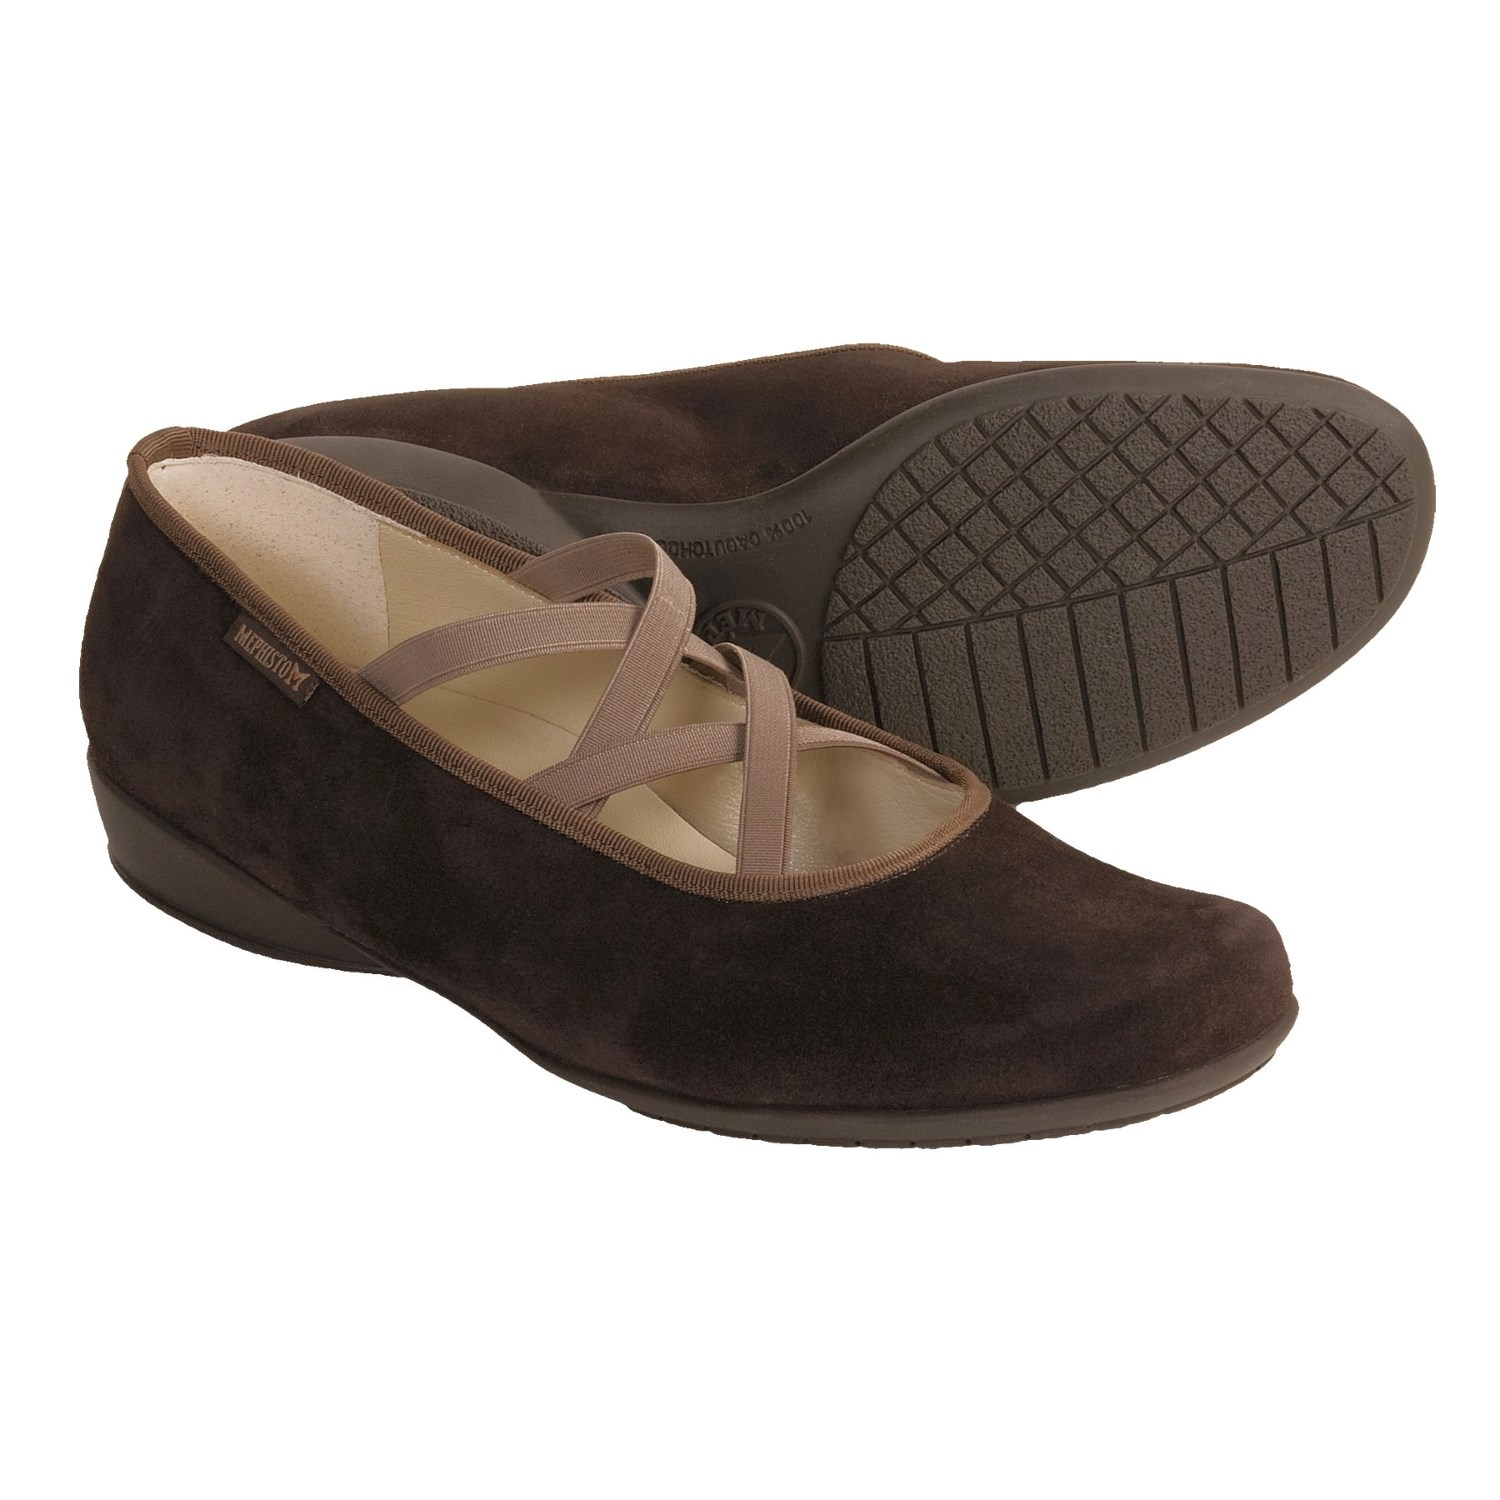 Unique Mephisto Klarina Shoes  Leather SlipOns For Women In Dk Brown